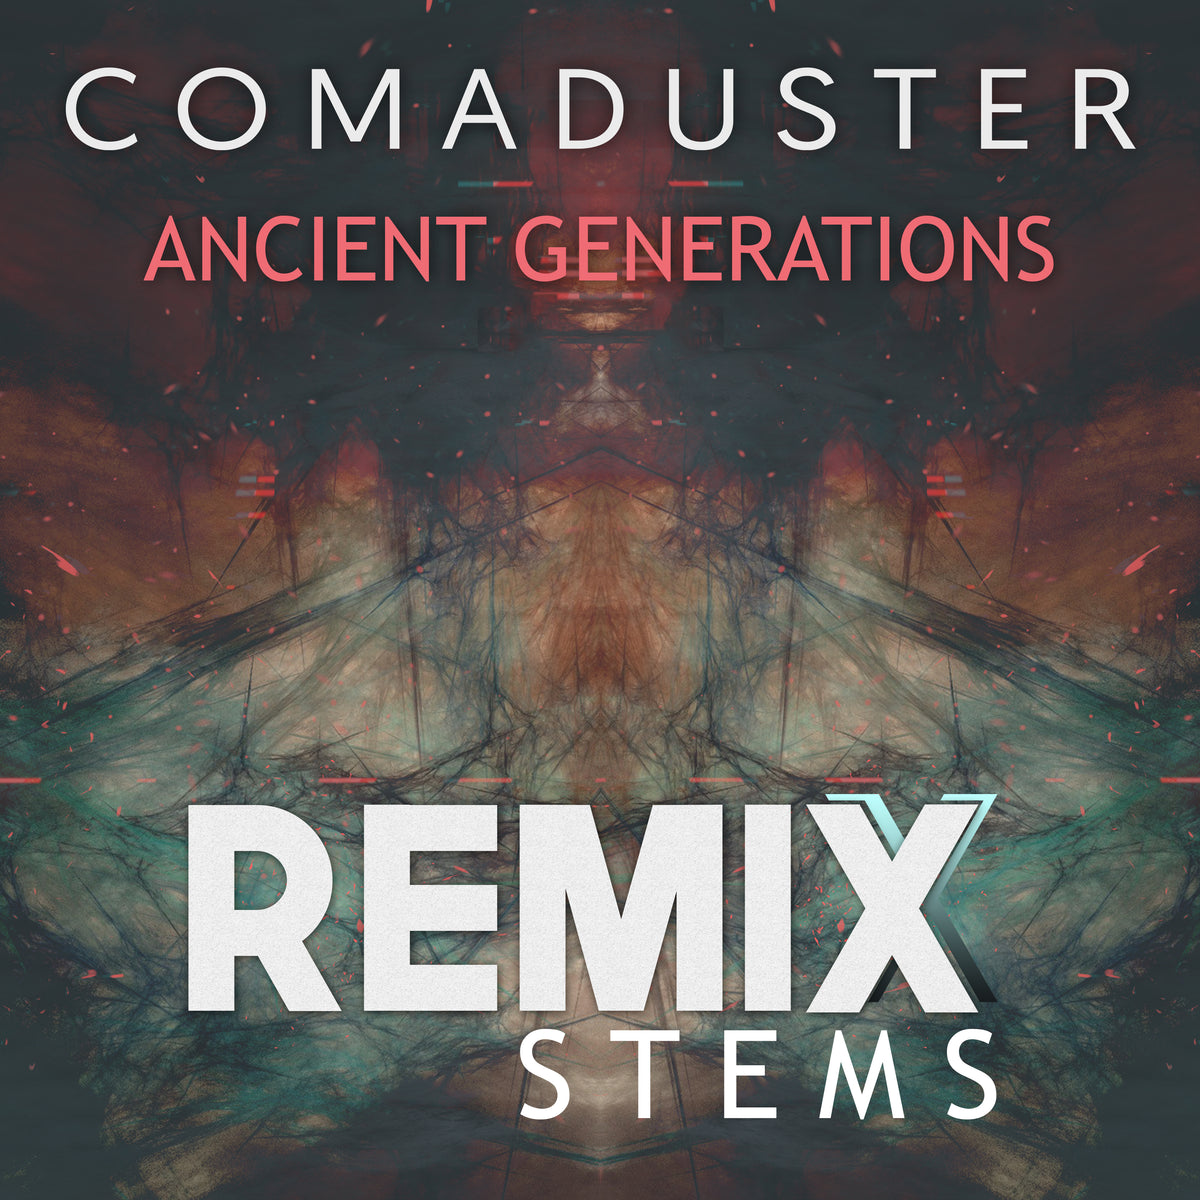 Comaduster - Ancient Generations (Remix Stems)